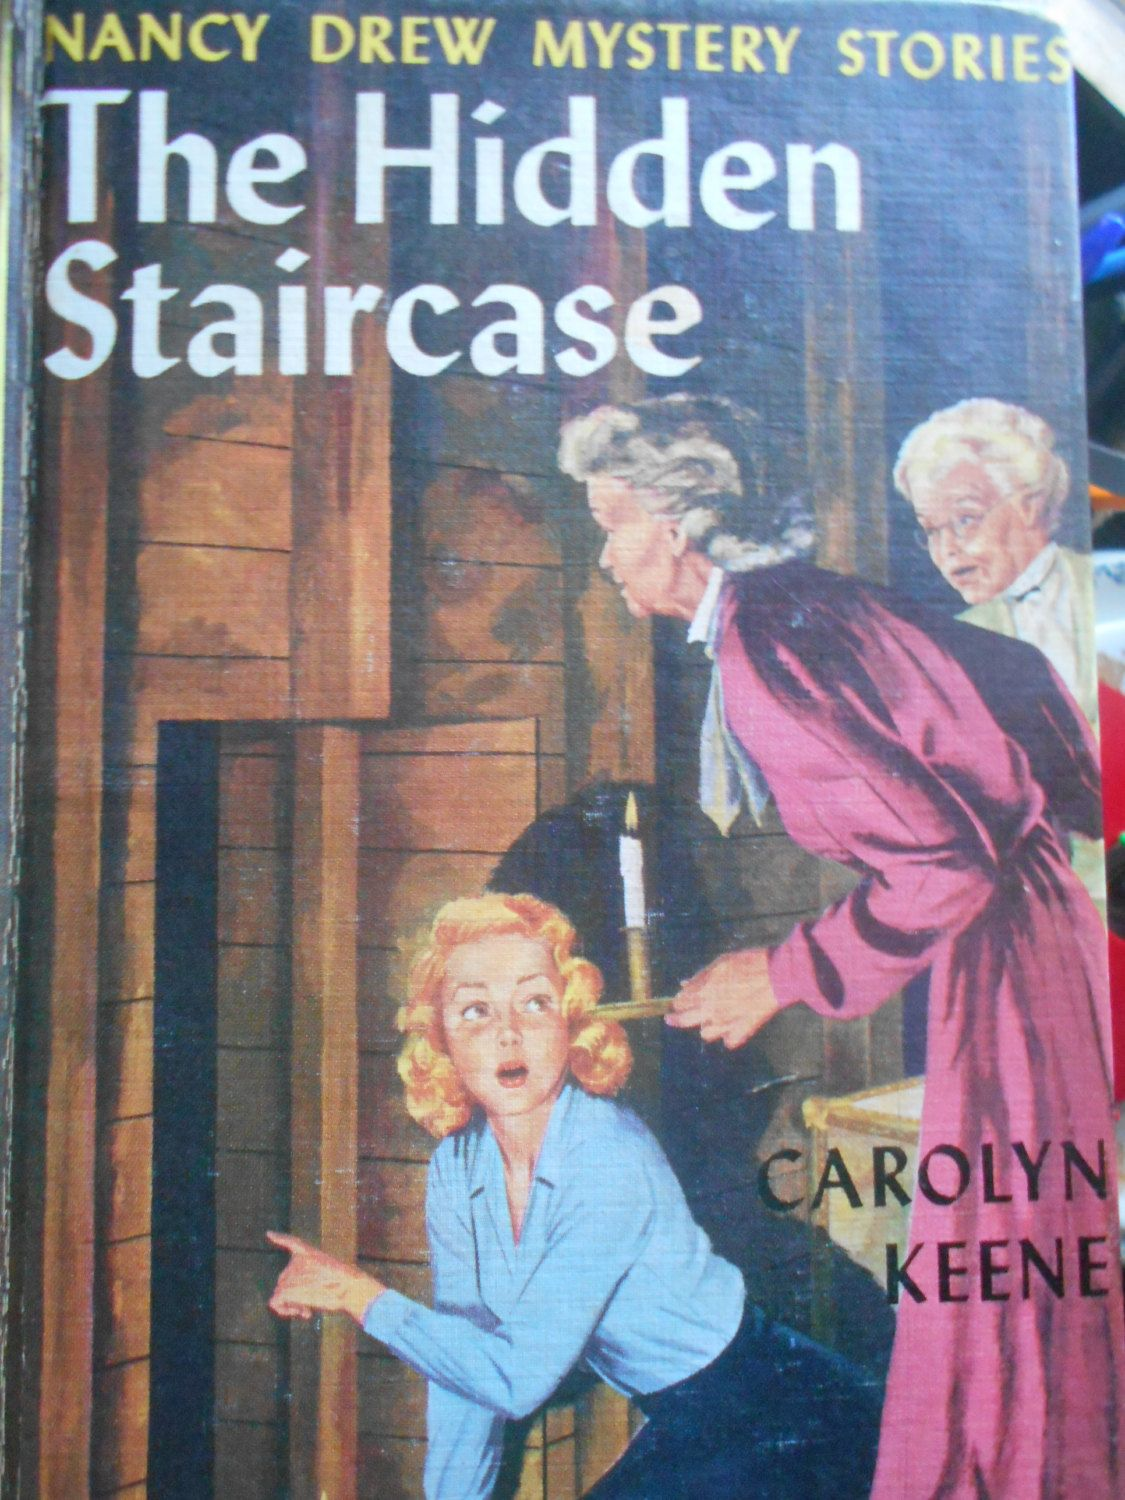 The Hidden Staircase Nancy Drew Mystery Story. Book 2. Carolyn Keene.  Hardcover 1959. By MarginaliaBooks On Etsy